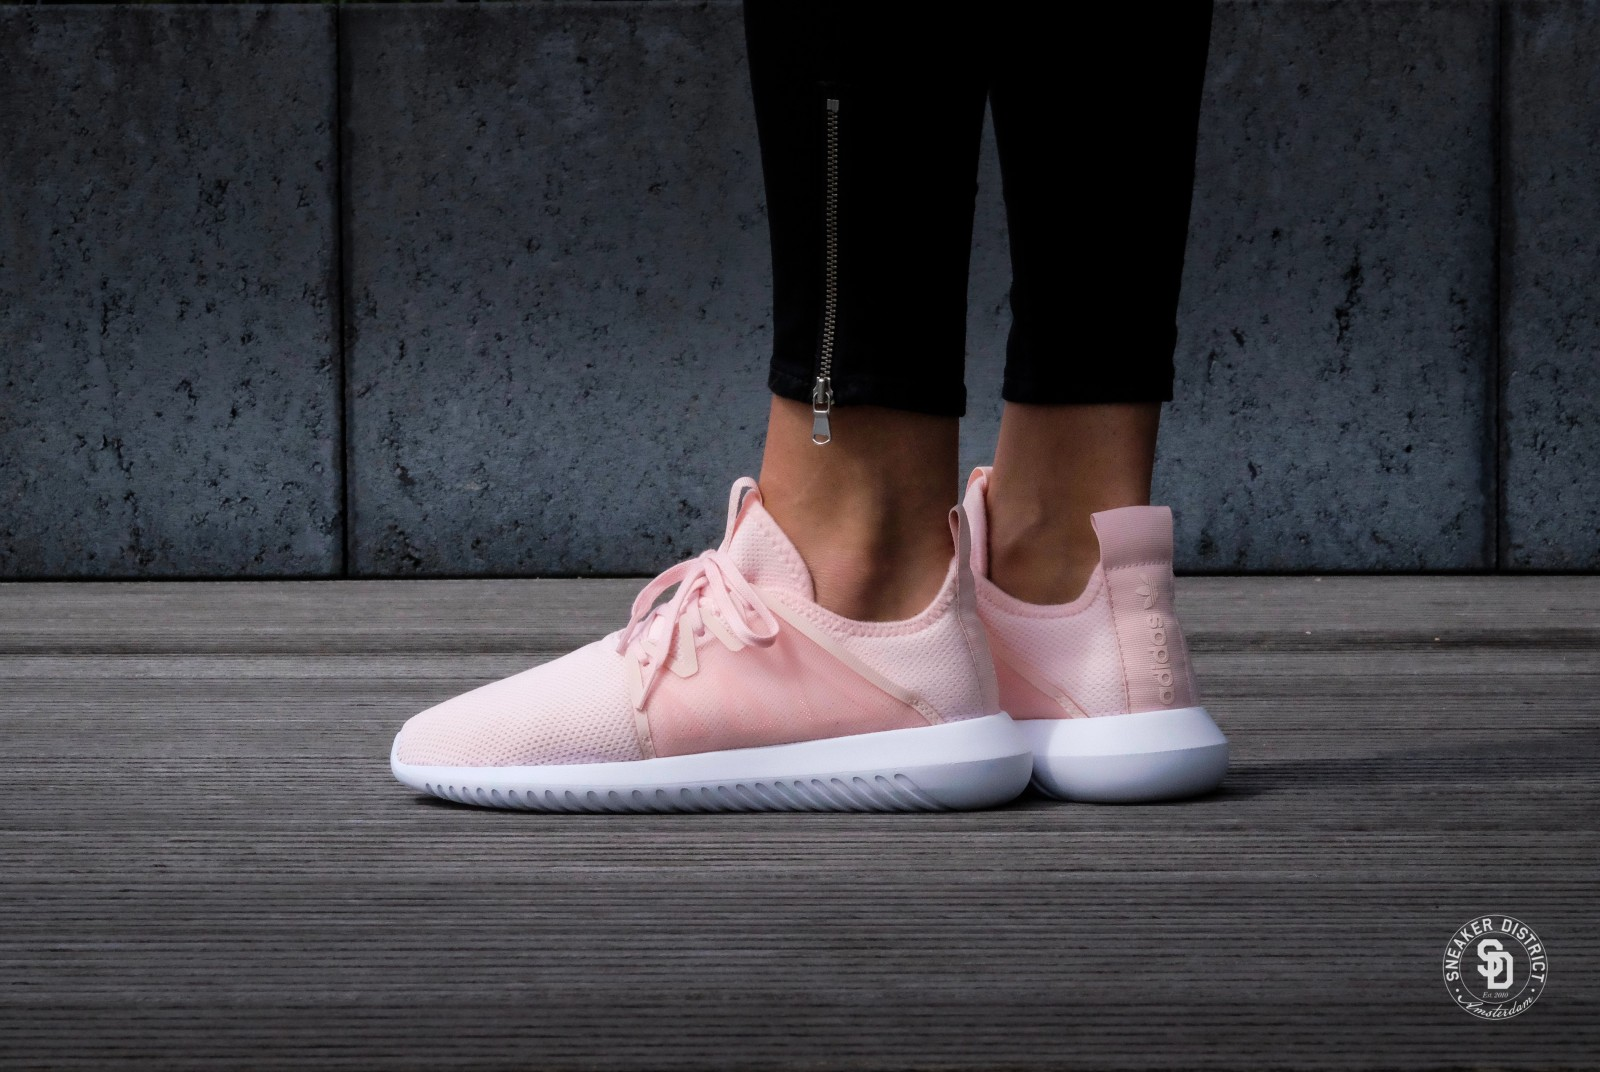 Adidas Originals Women's Tubular Viral 2 Pink/White BY2122